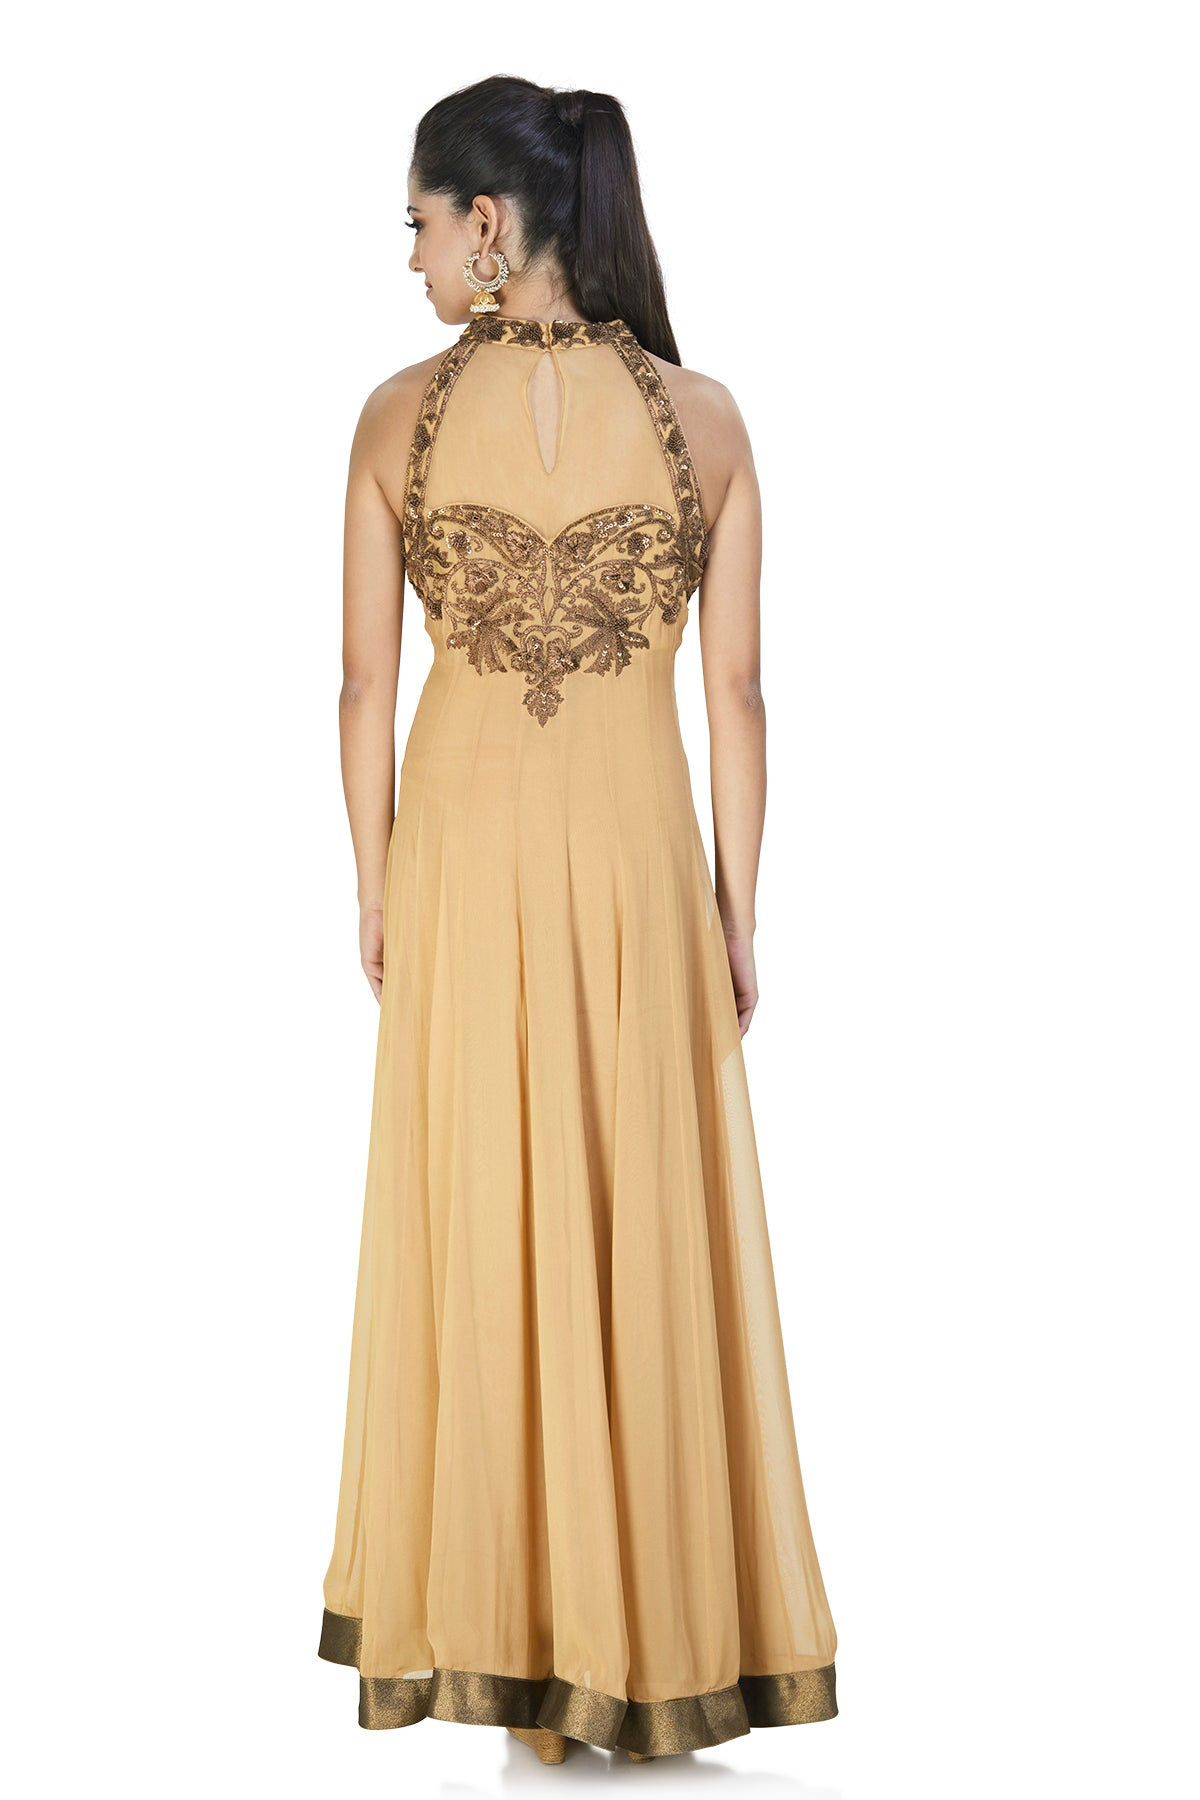 Sleeveless bronze gown